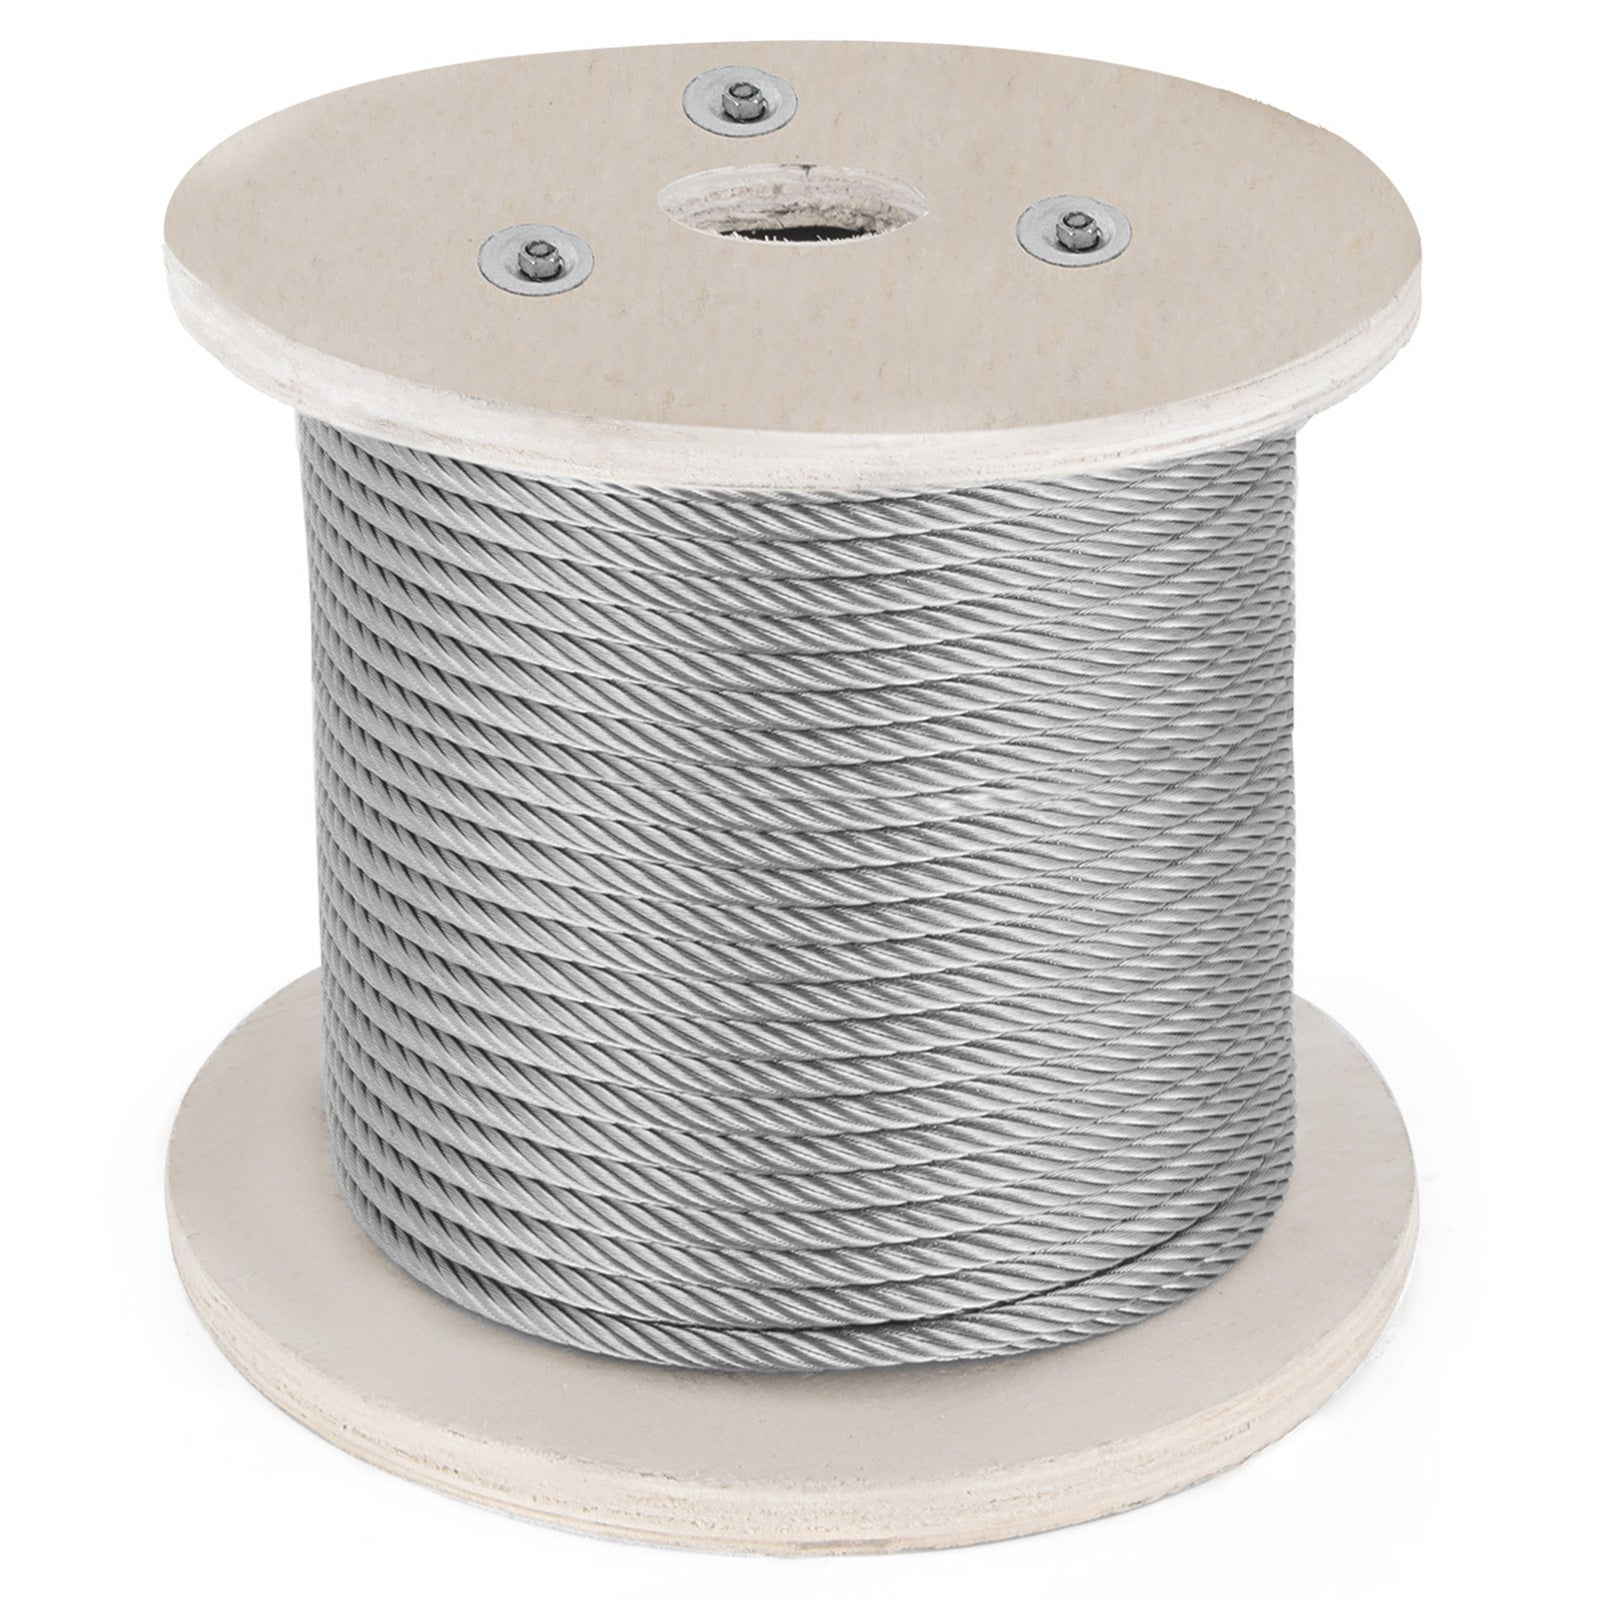 Cable Railing 316 Stainless Steel Wire Rope Cable 100ft 3/16 1x19